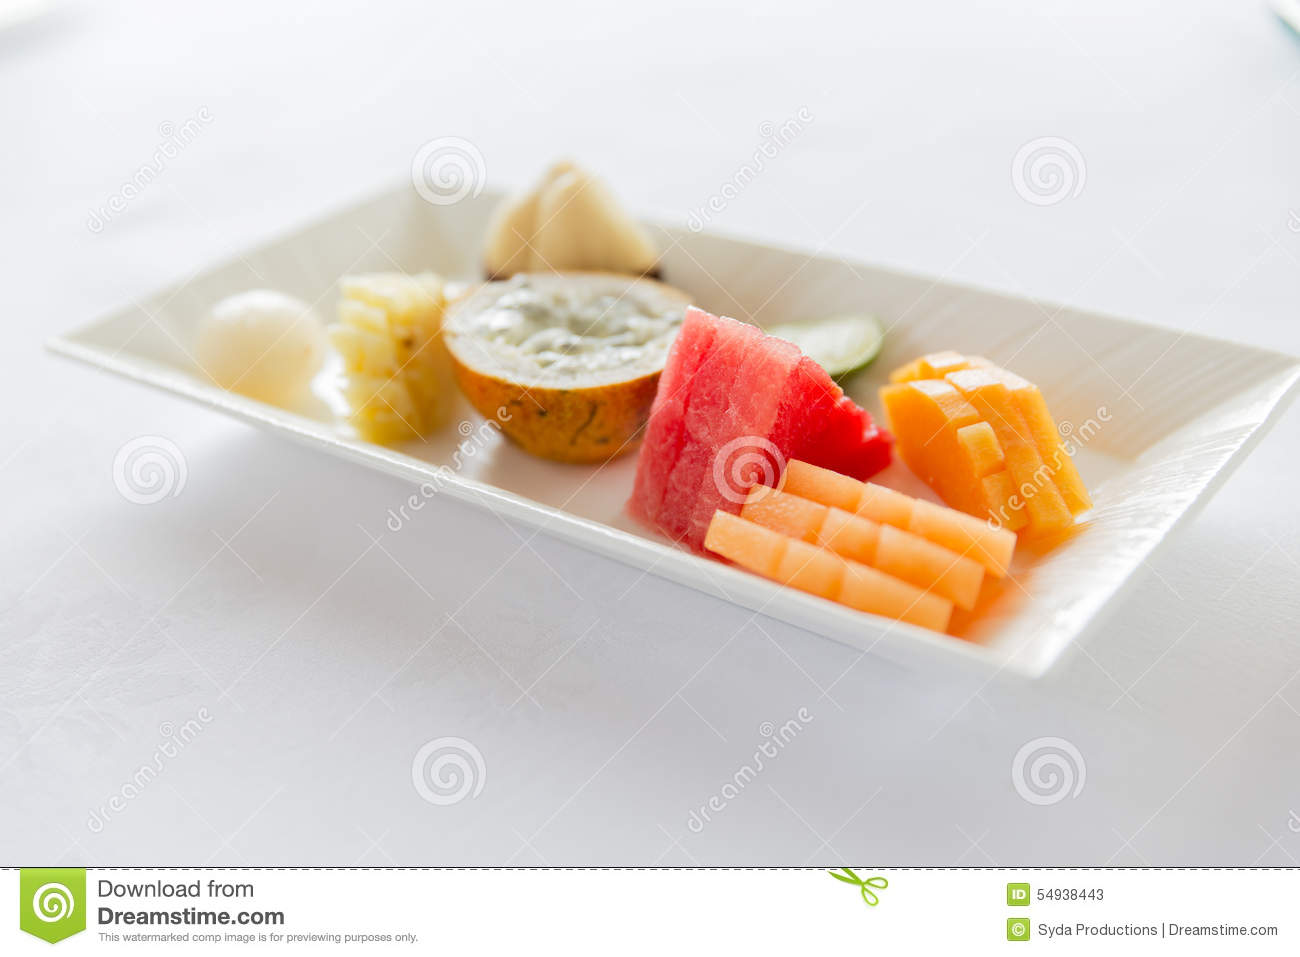 Plate Of Fresh Juicy Fruit Dessert At Restaurant Stock Image - Image ...